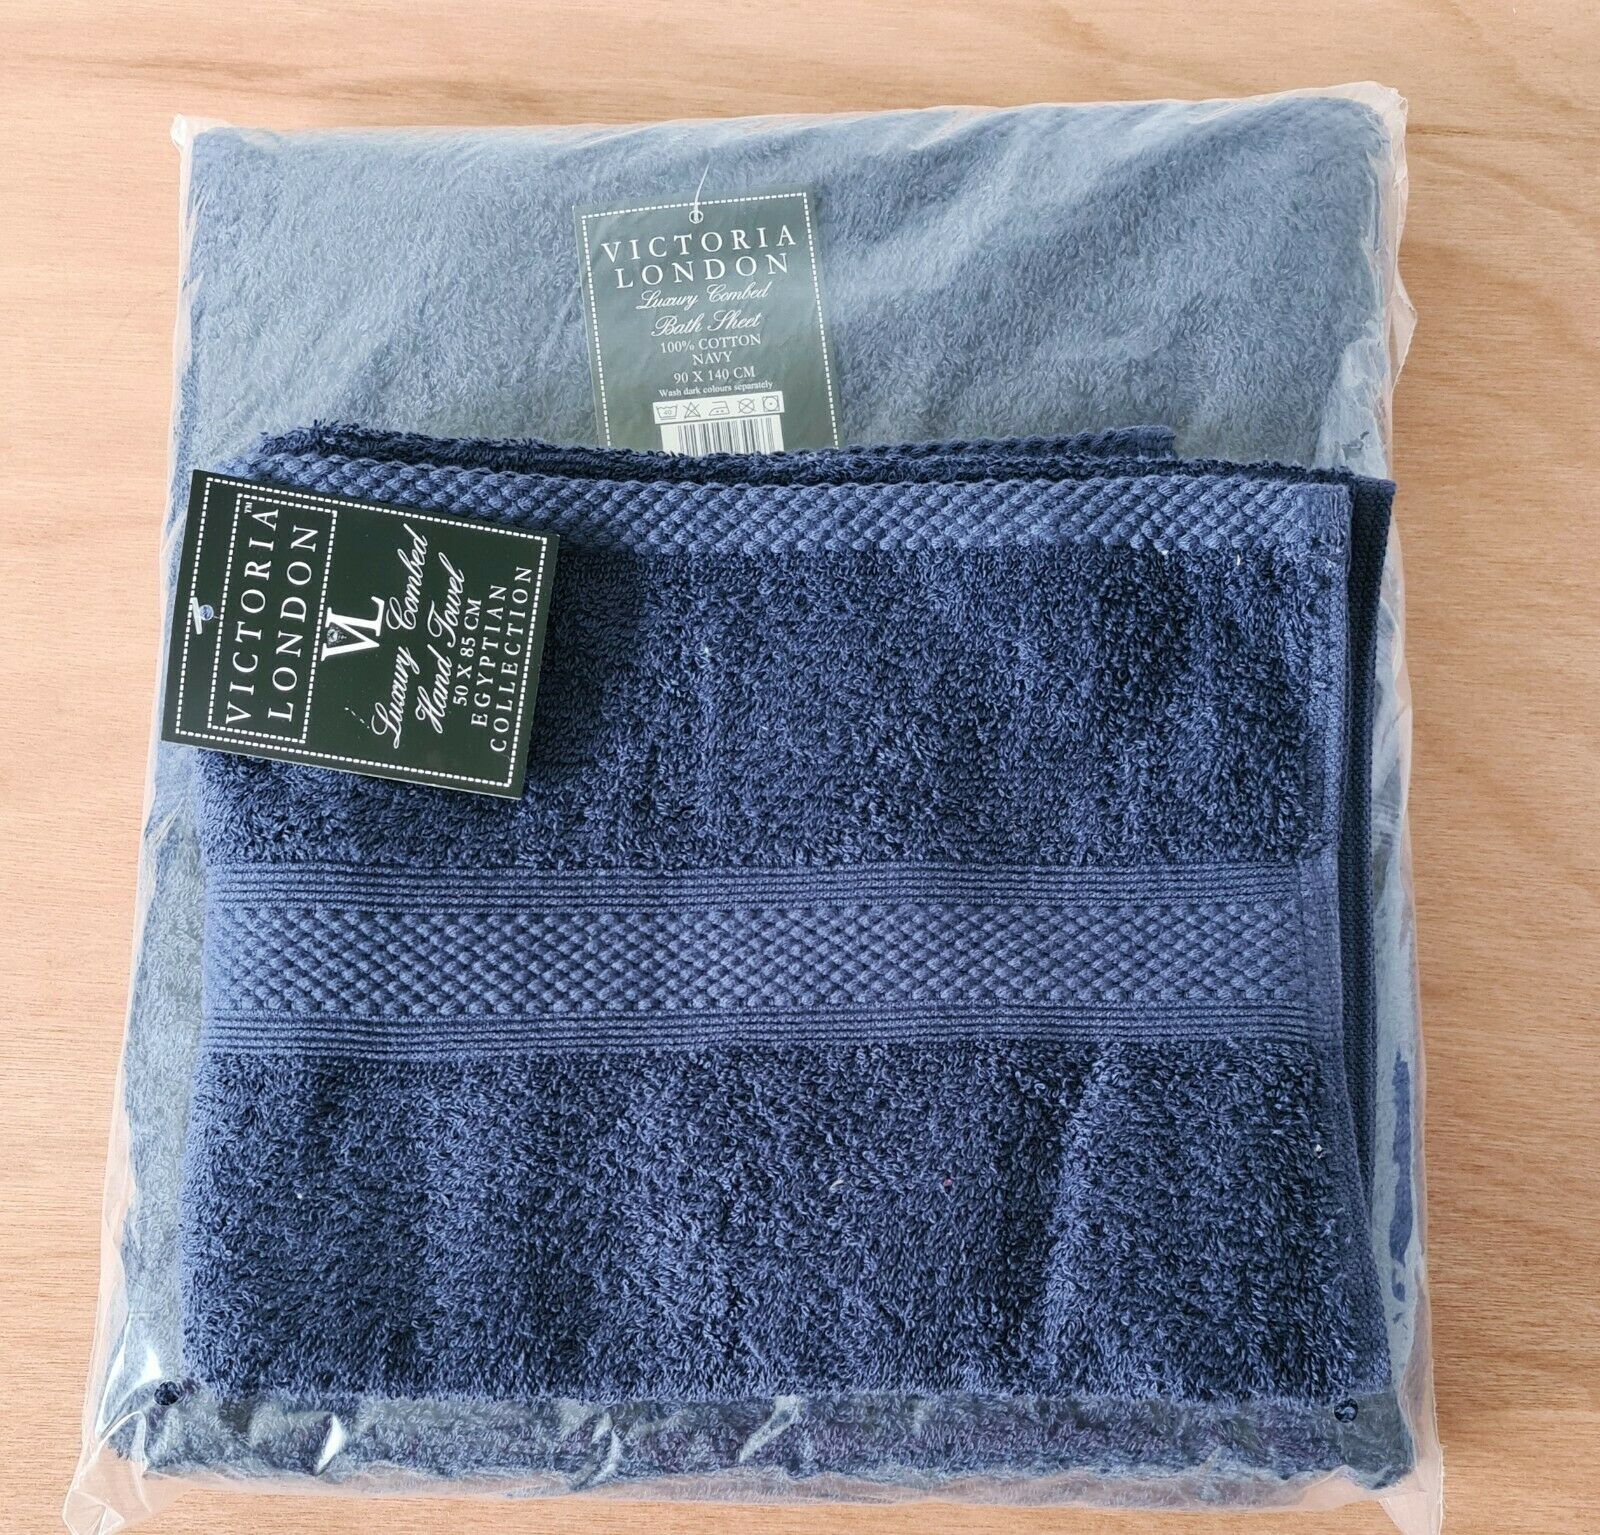 2 x Victoria London Hand Towel and Large Bath Sheet Cloth 100% Cotton Navy